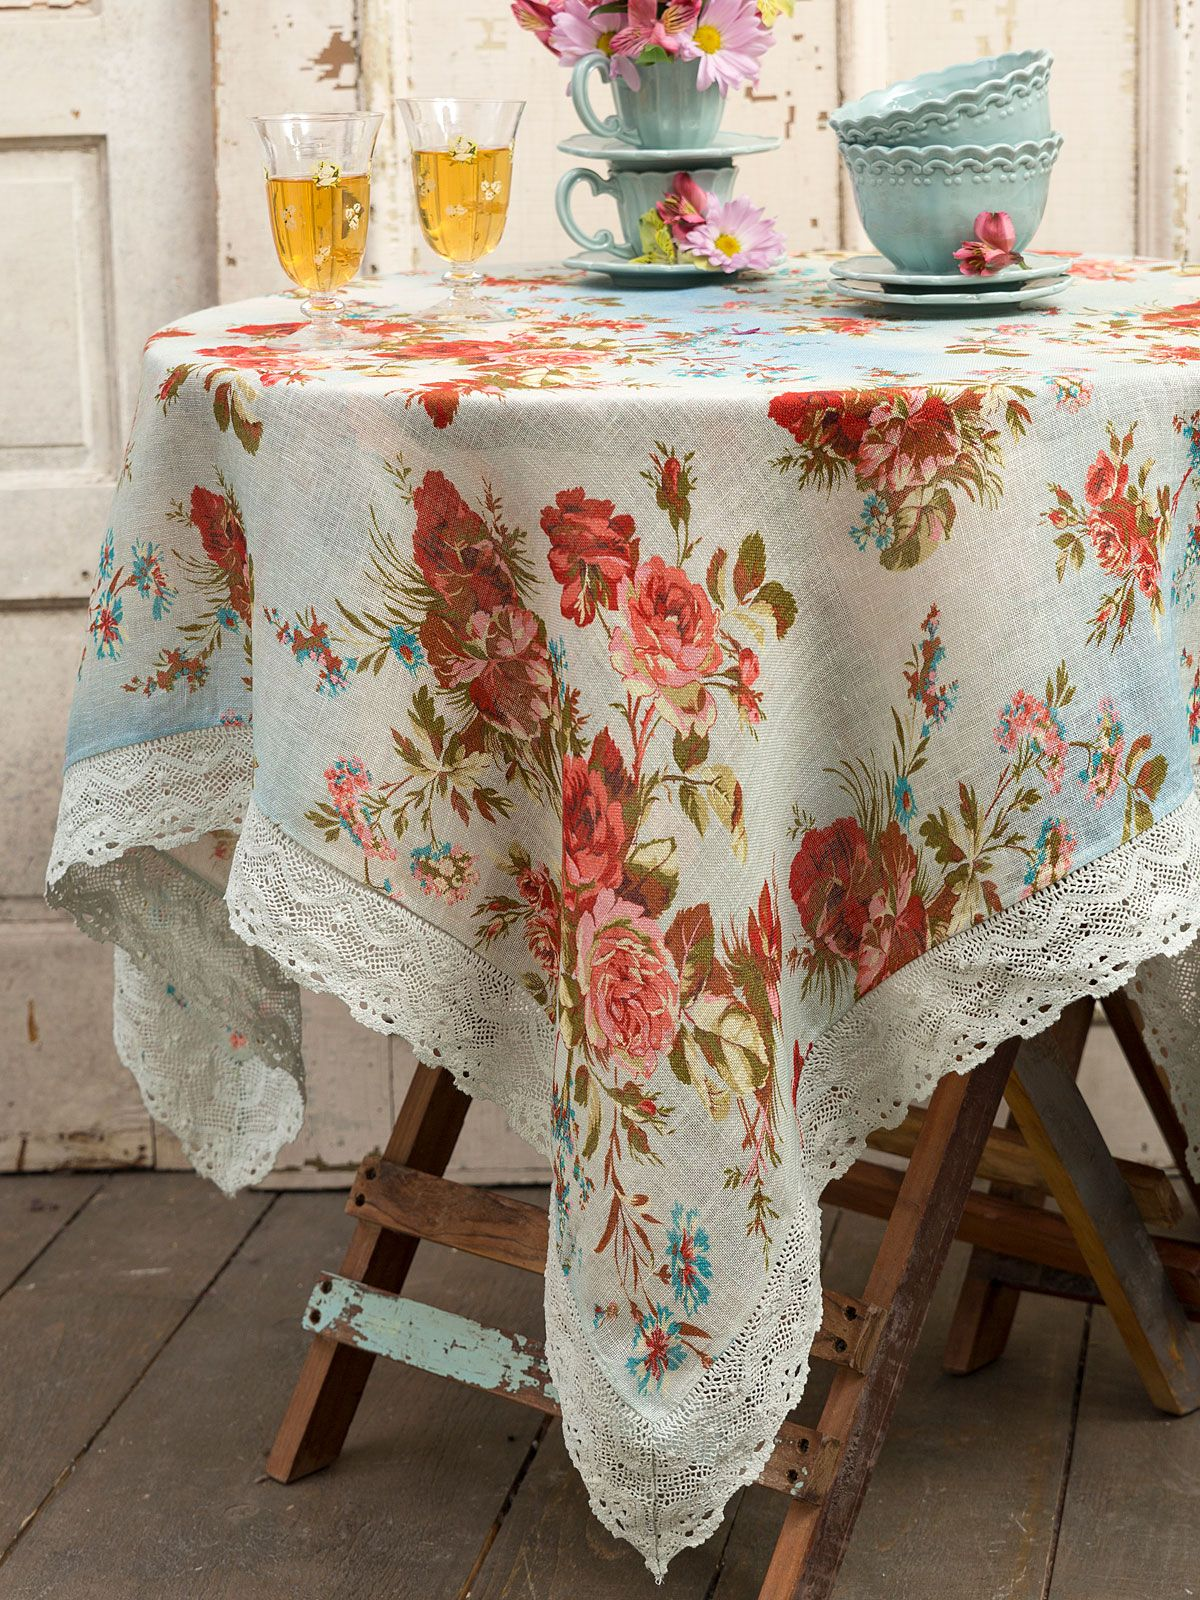 Heirloom Rose Linen Tablecloth Kitchen Table Linens Tablecloths Beautiful Designs By April Cornell Table Cloth Linen Tablecloth Blue Tablecloth